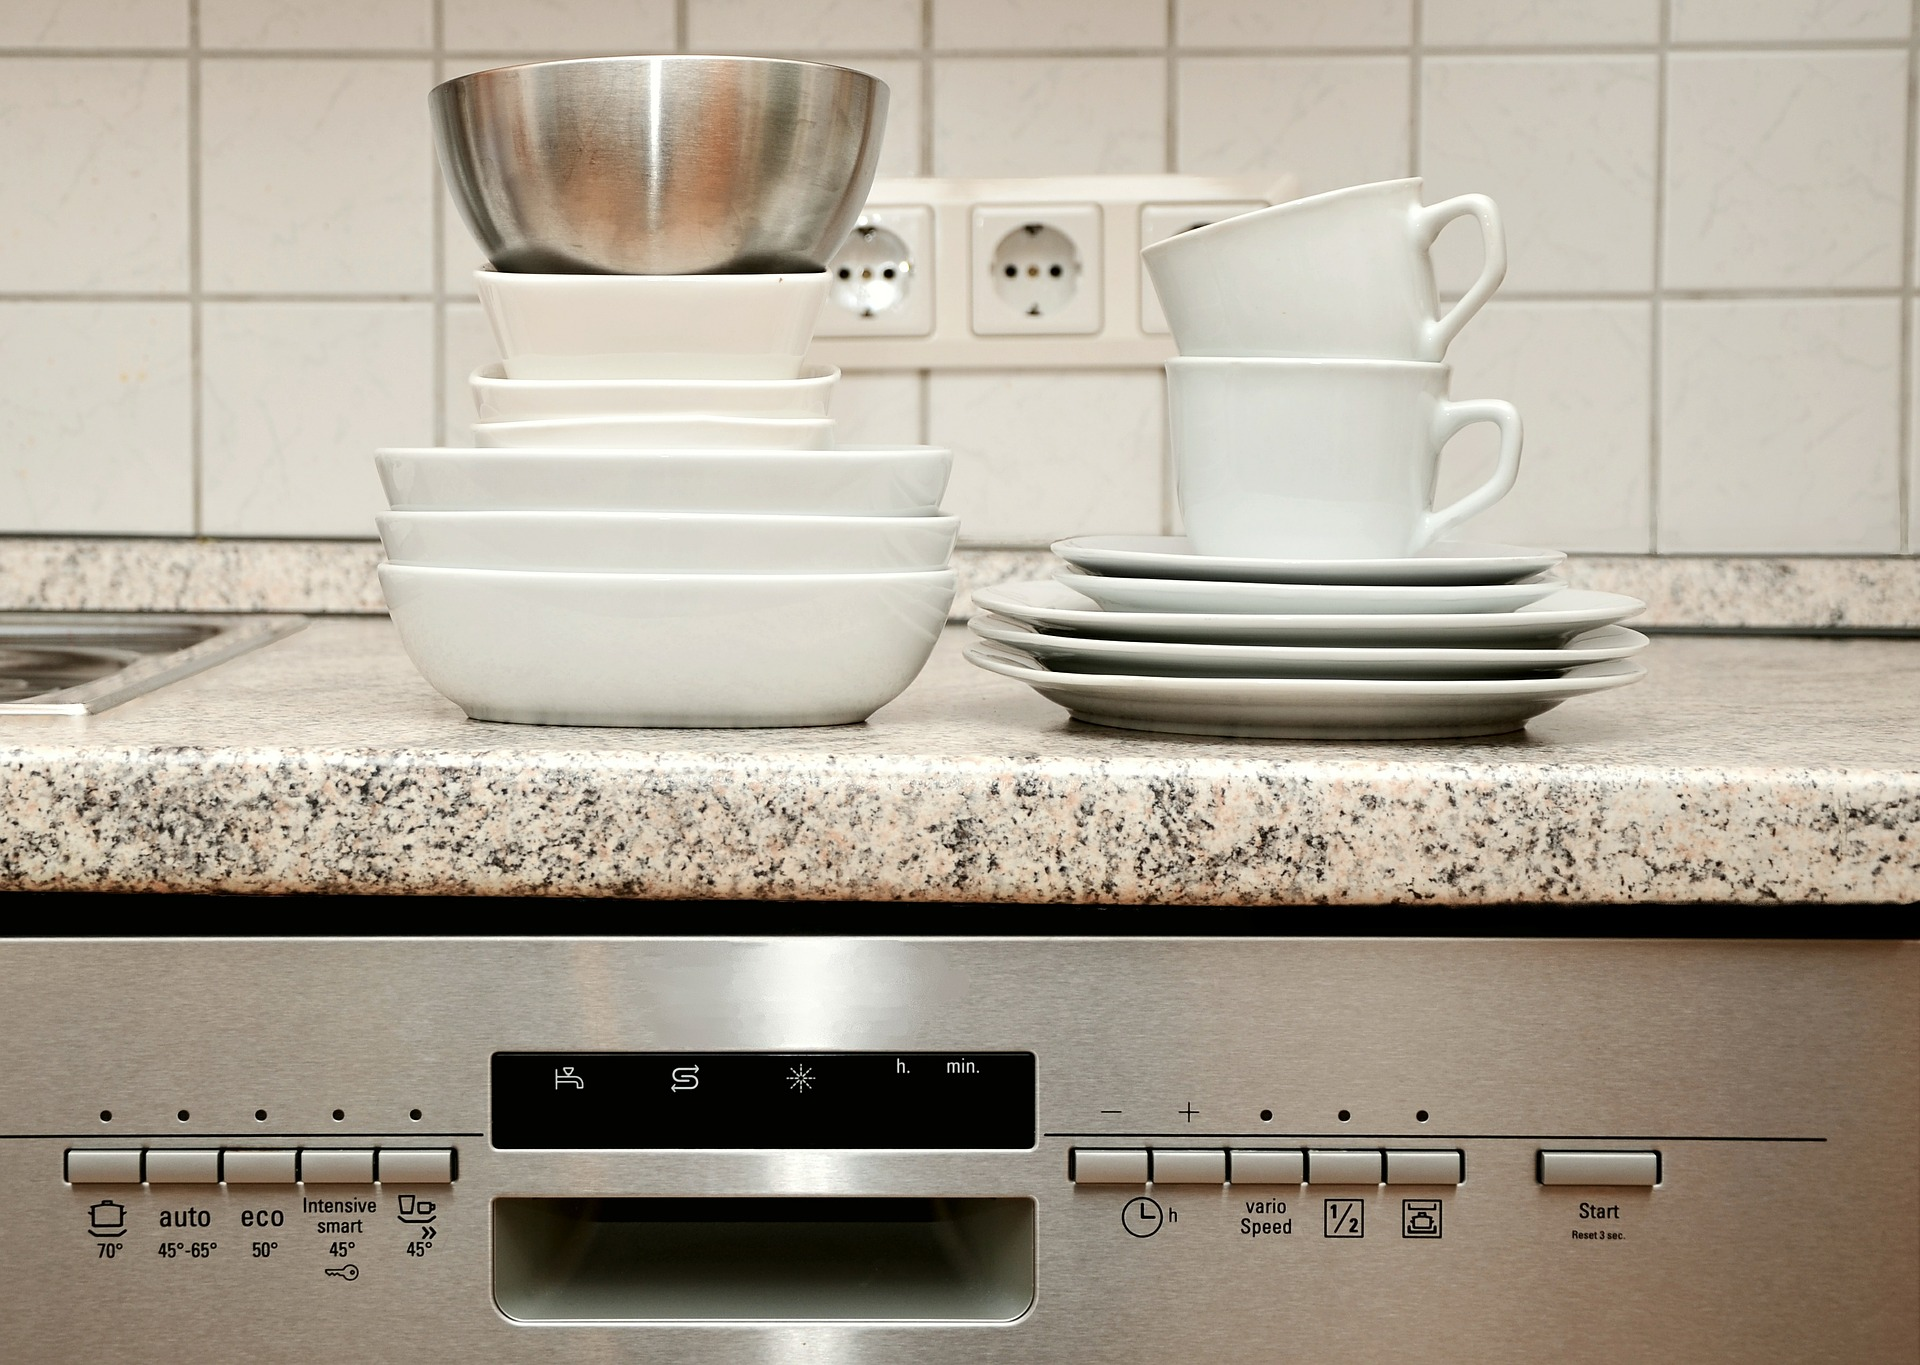 4 Things Your Dishwasher Can Teach You About Studying